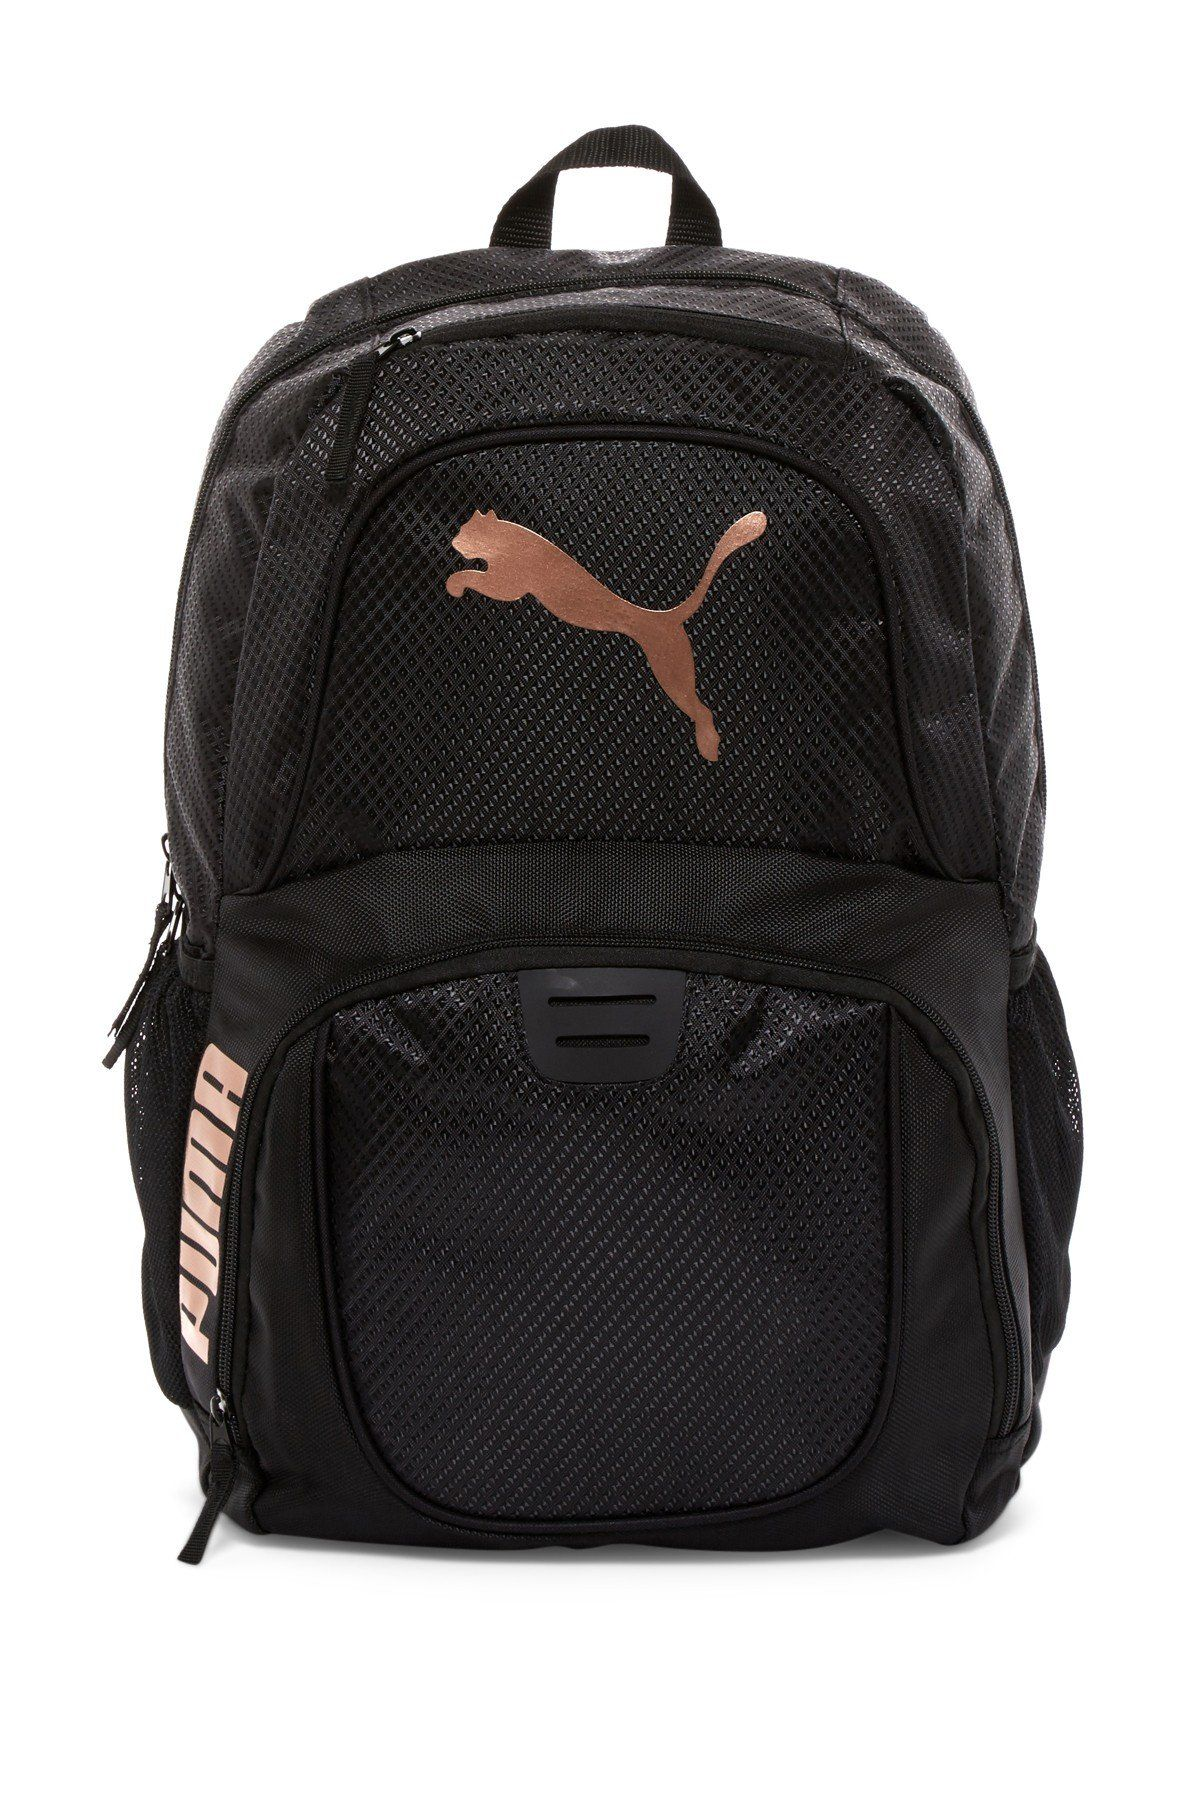 c908f91cd1 PUMA Men s Evercat Contender 3.0 Backpack Accessory